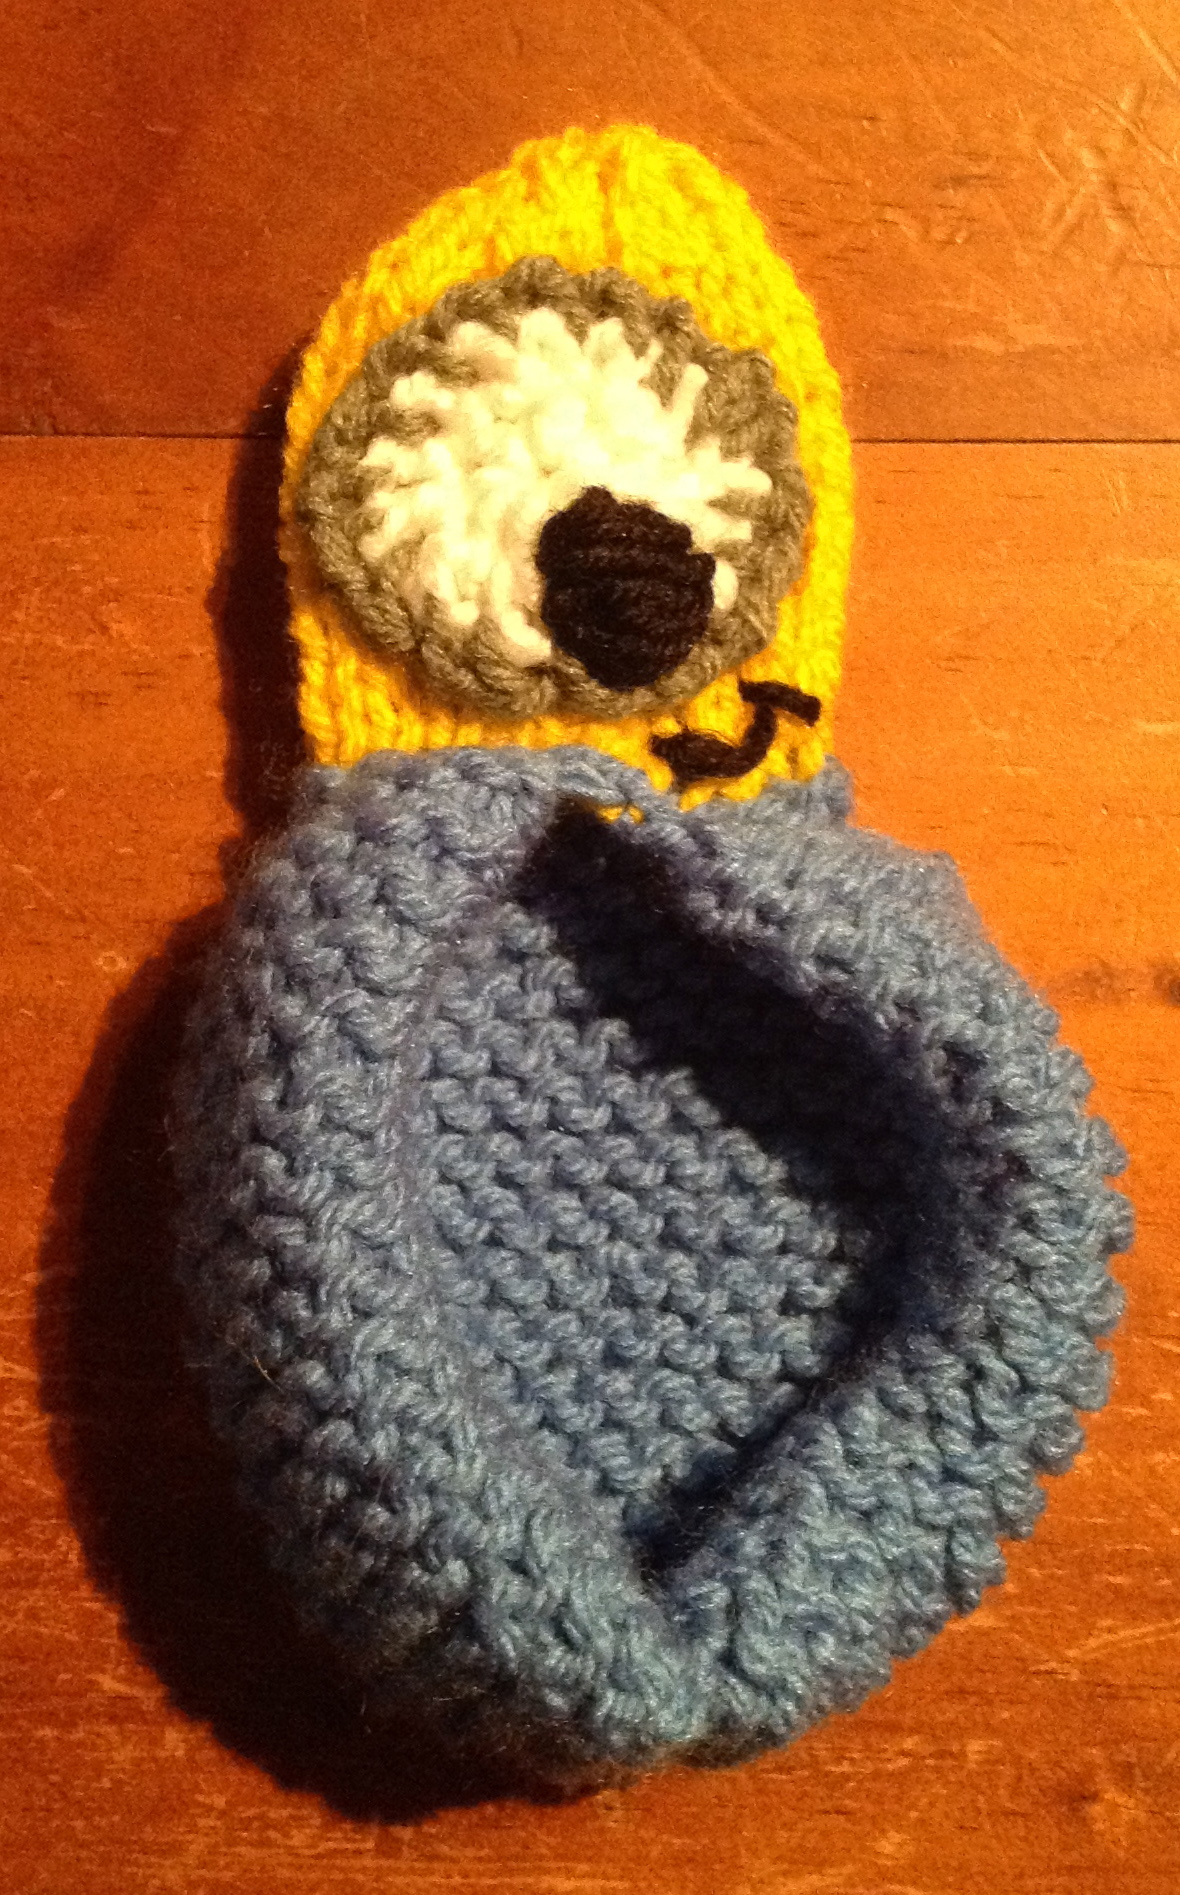 Knitting Patterns For Minion Hats Free Despicable Me Minion Knitting Patterns The Knit Guru